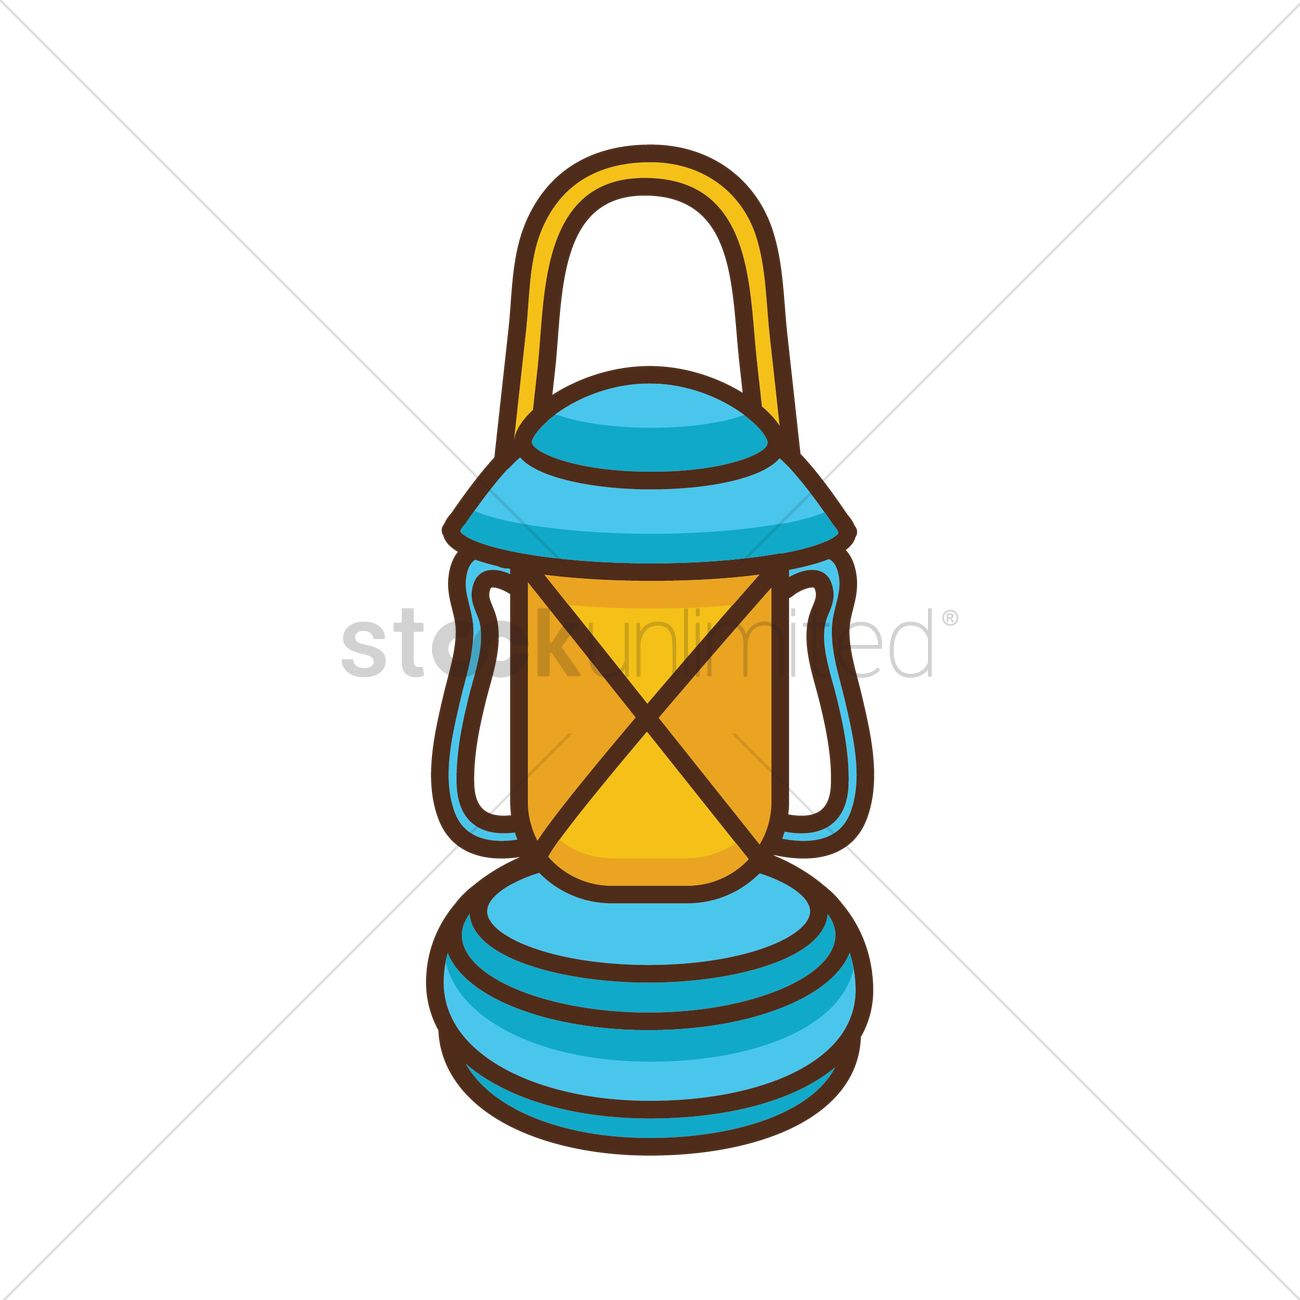 Oil lamp Vector Image - 1942488 | StockUnlimited for Oil Lamp Clip Art  570bof